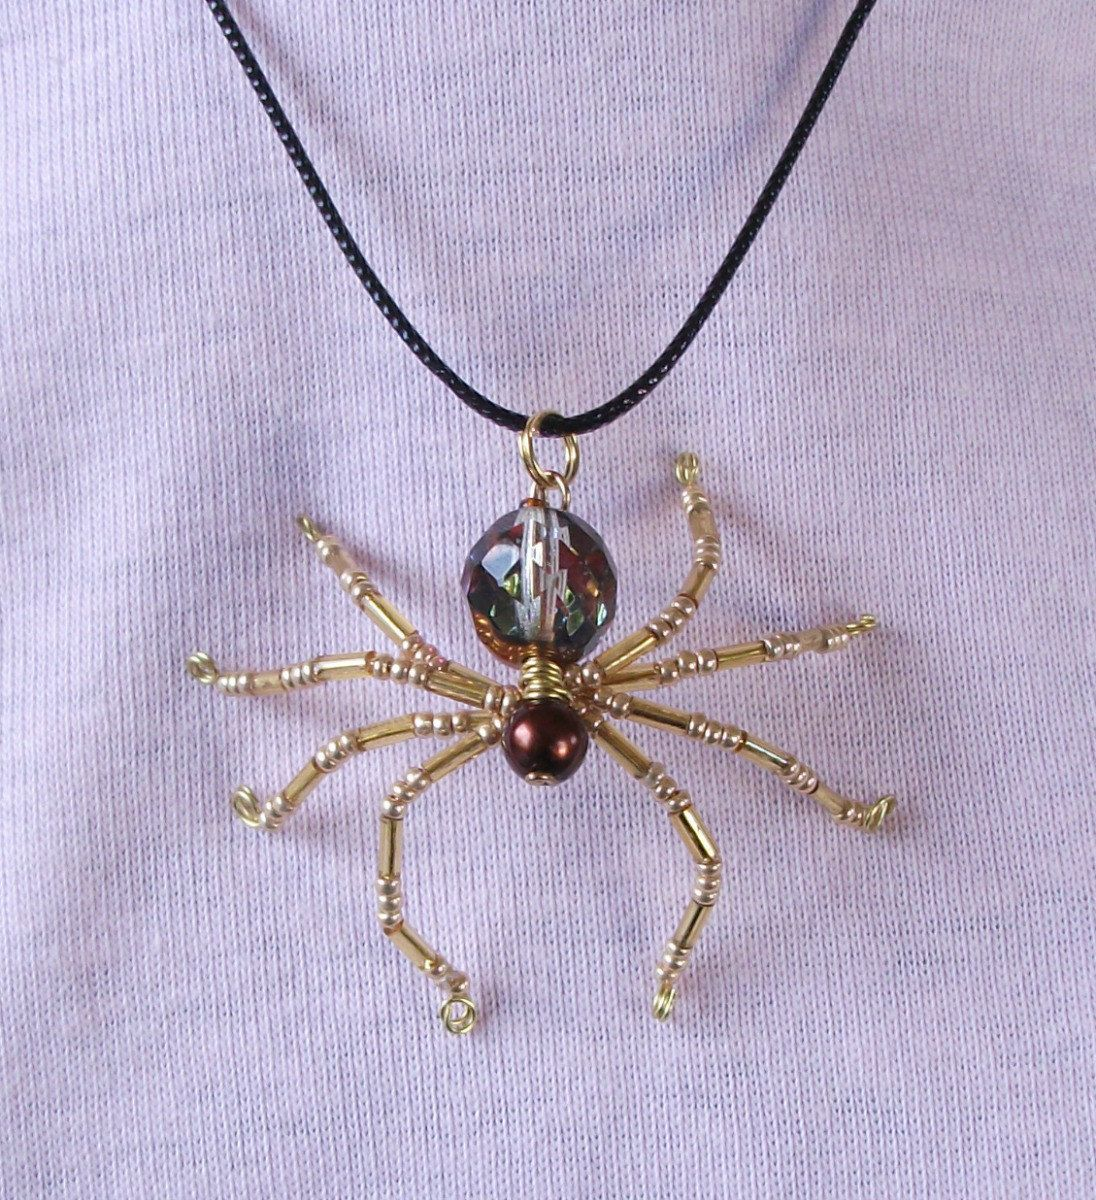 Halloween beaded spider pendant necklace 1000 via etsy halloween beaded spider pendant necklace 1000 via etsy aloadofball Image collections